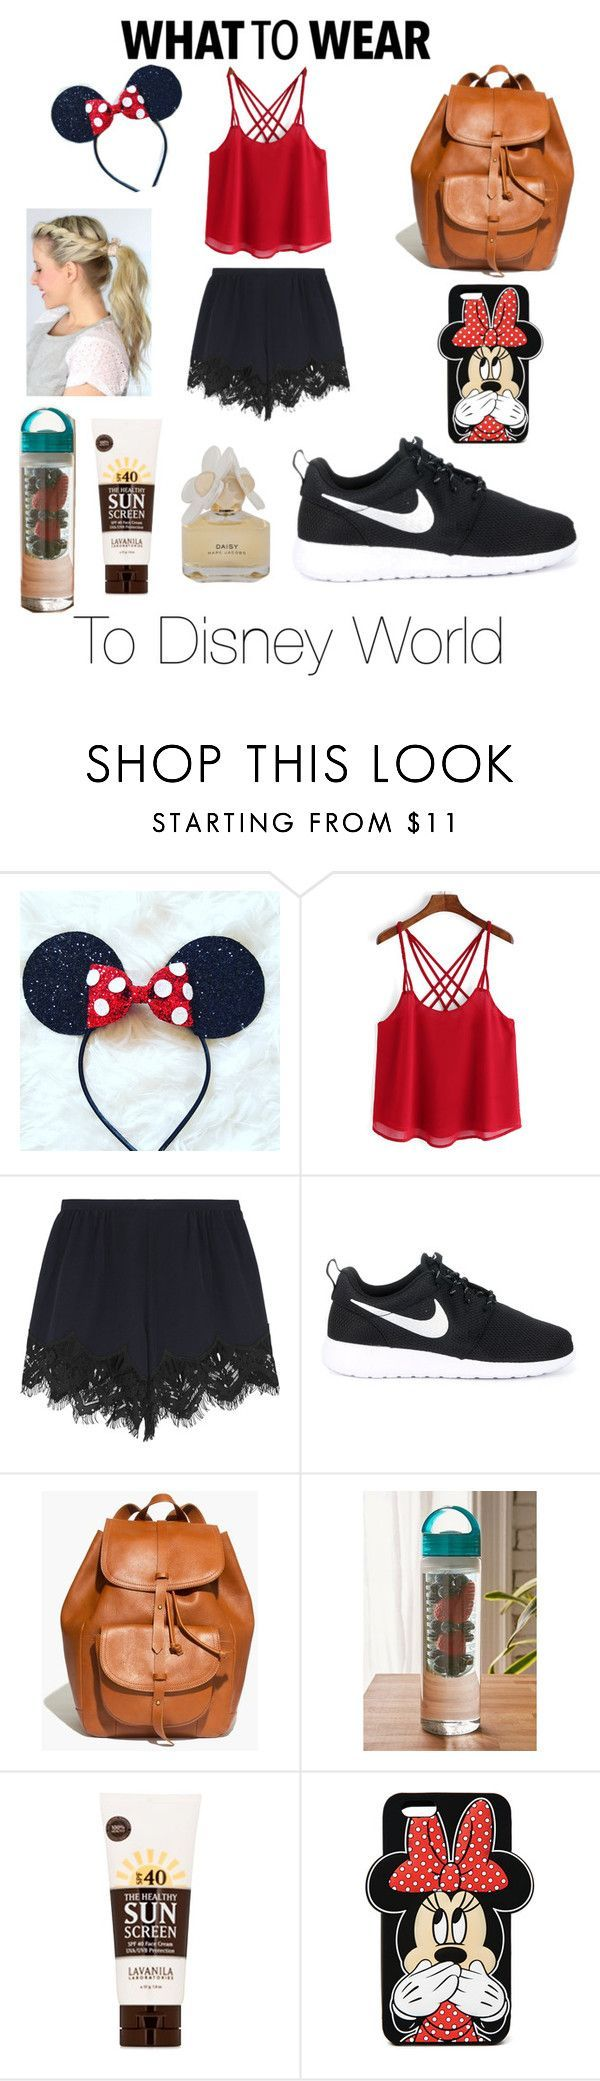 What To Wear To Disney World - http://www.popularaz.com/what-to-wear-to-disney-world/